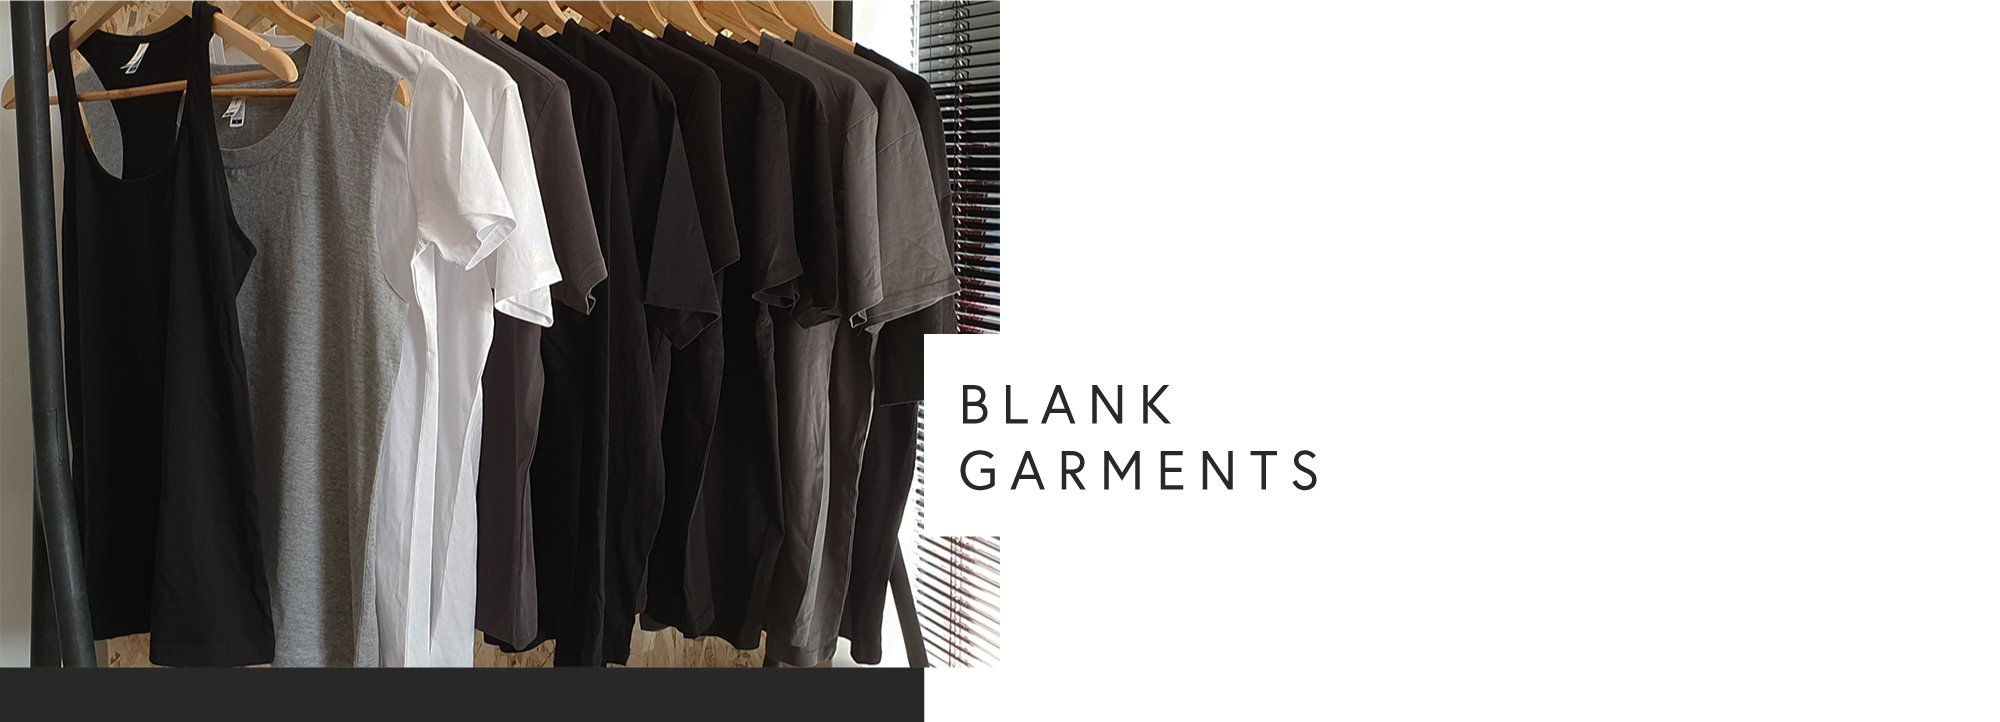 blank-garments-clickthrough-8.jpg